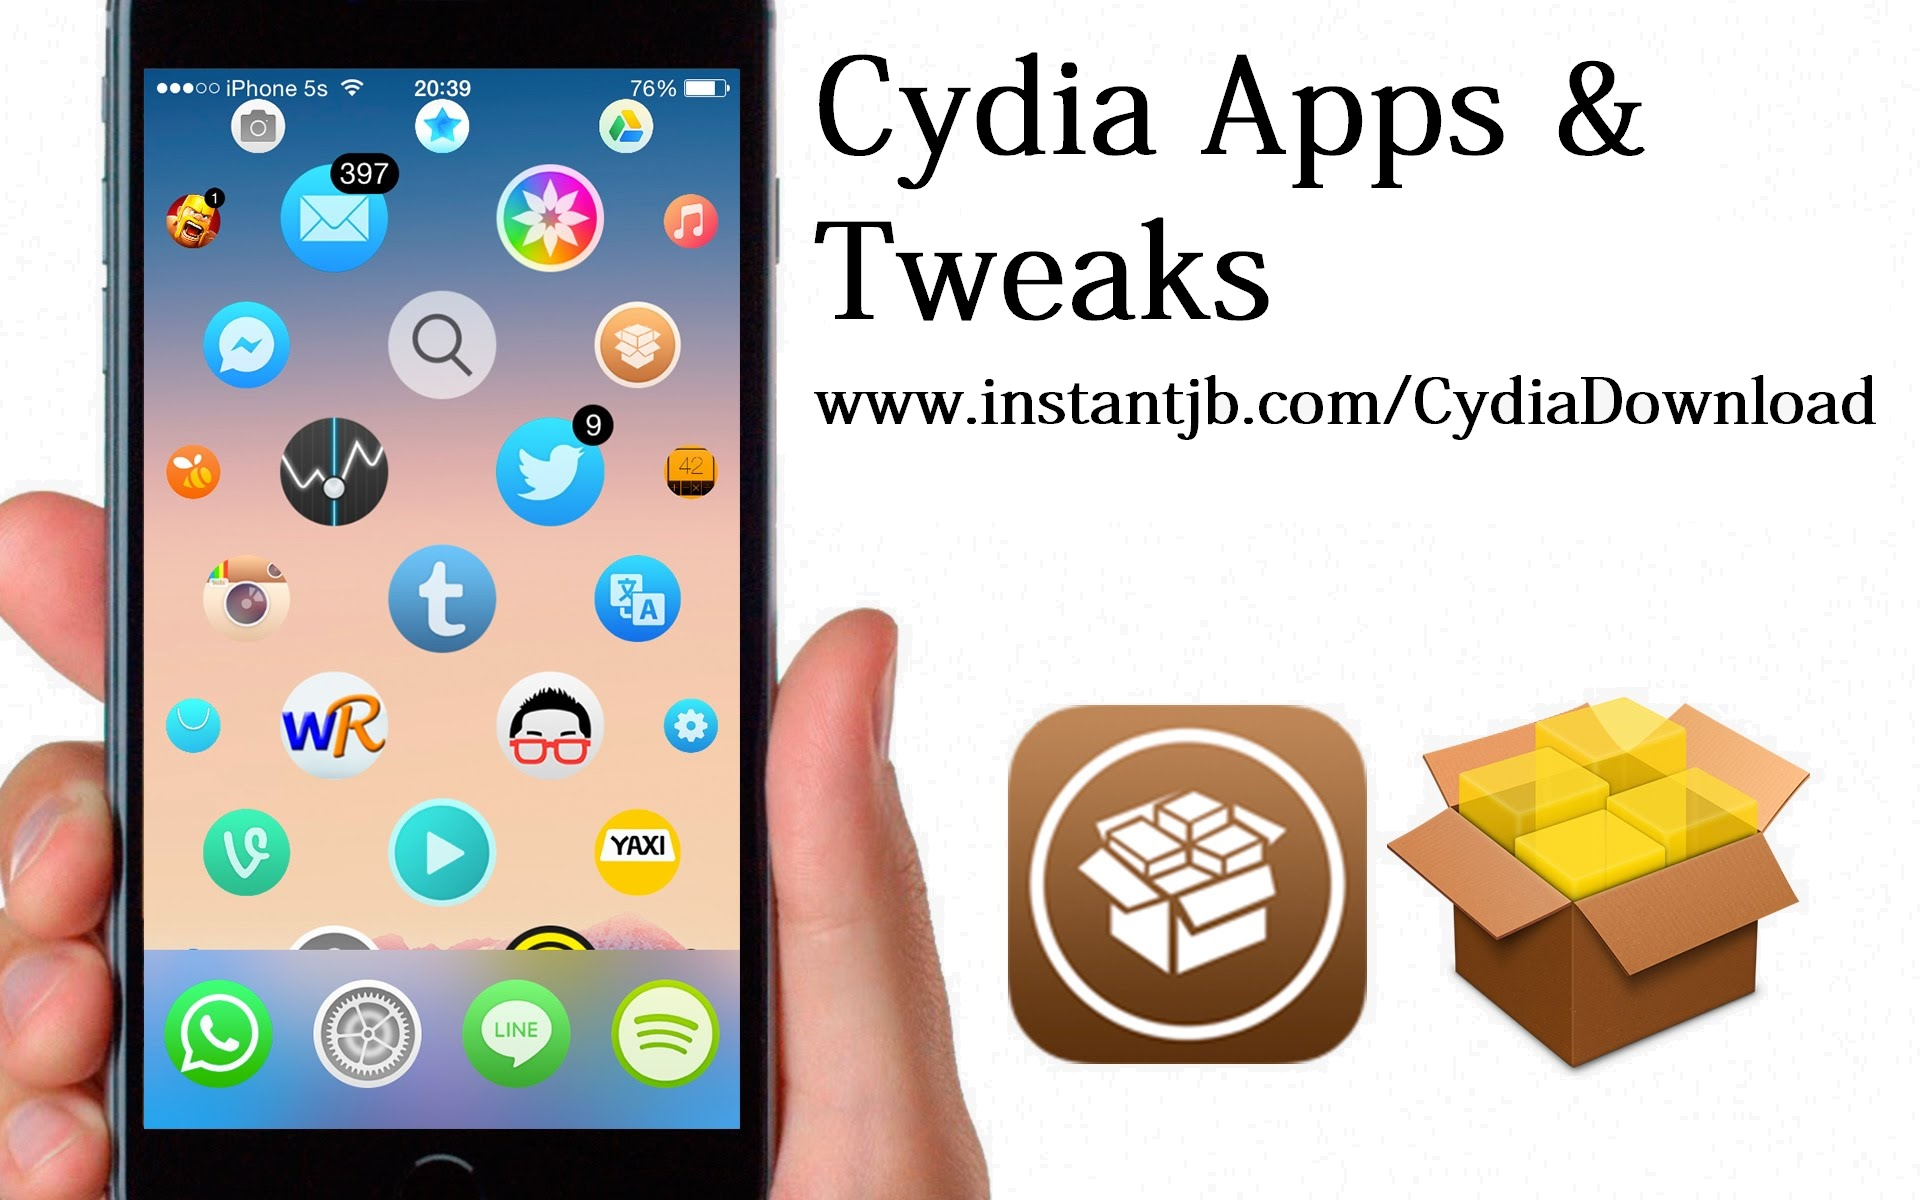 How to install cracked apps with Cydia – Best Cydia Apps